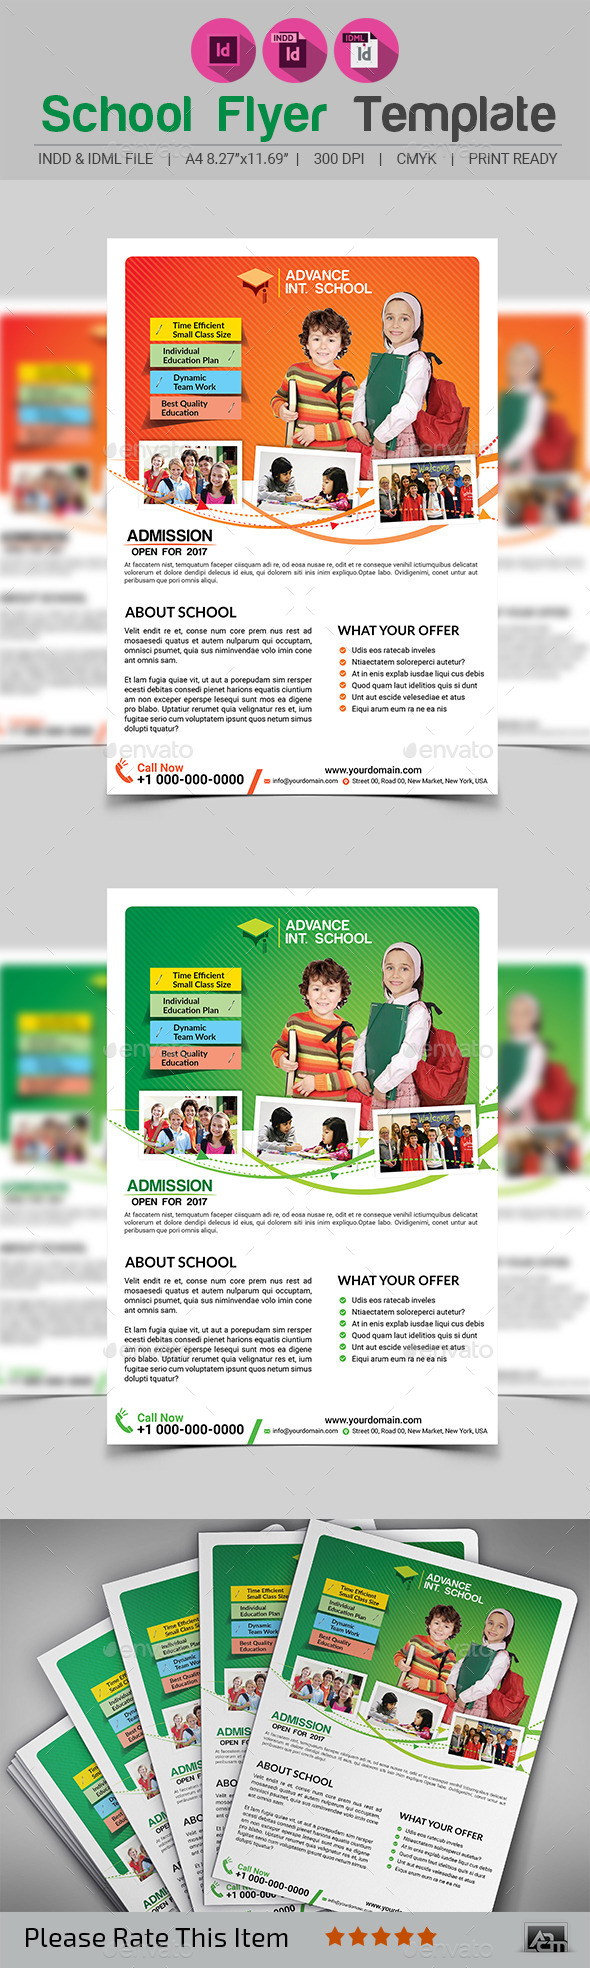 School Flyer Template V2 - Corporate Flyers